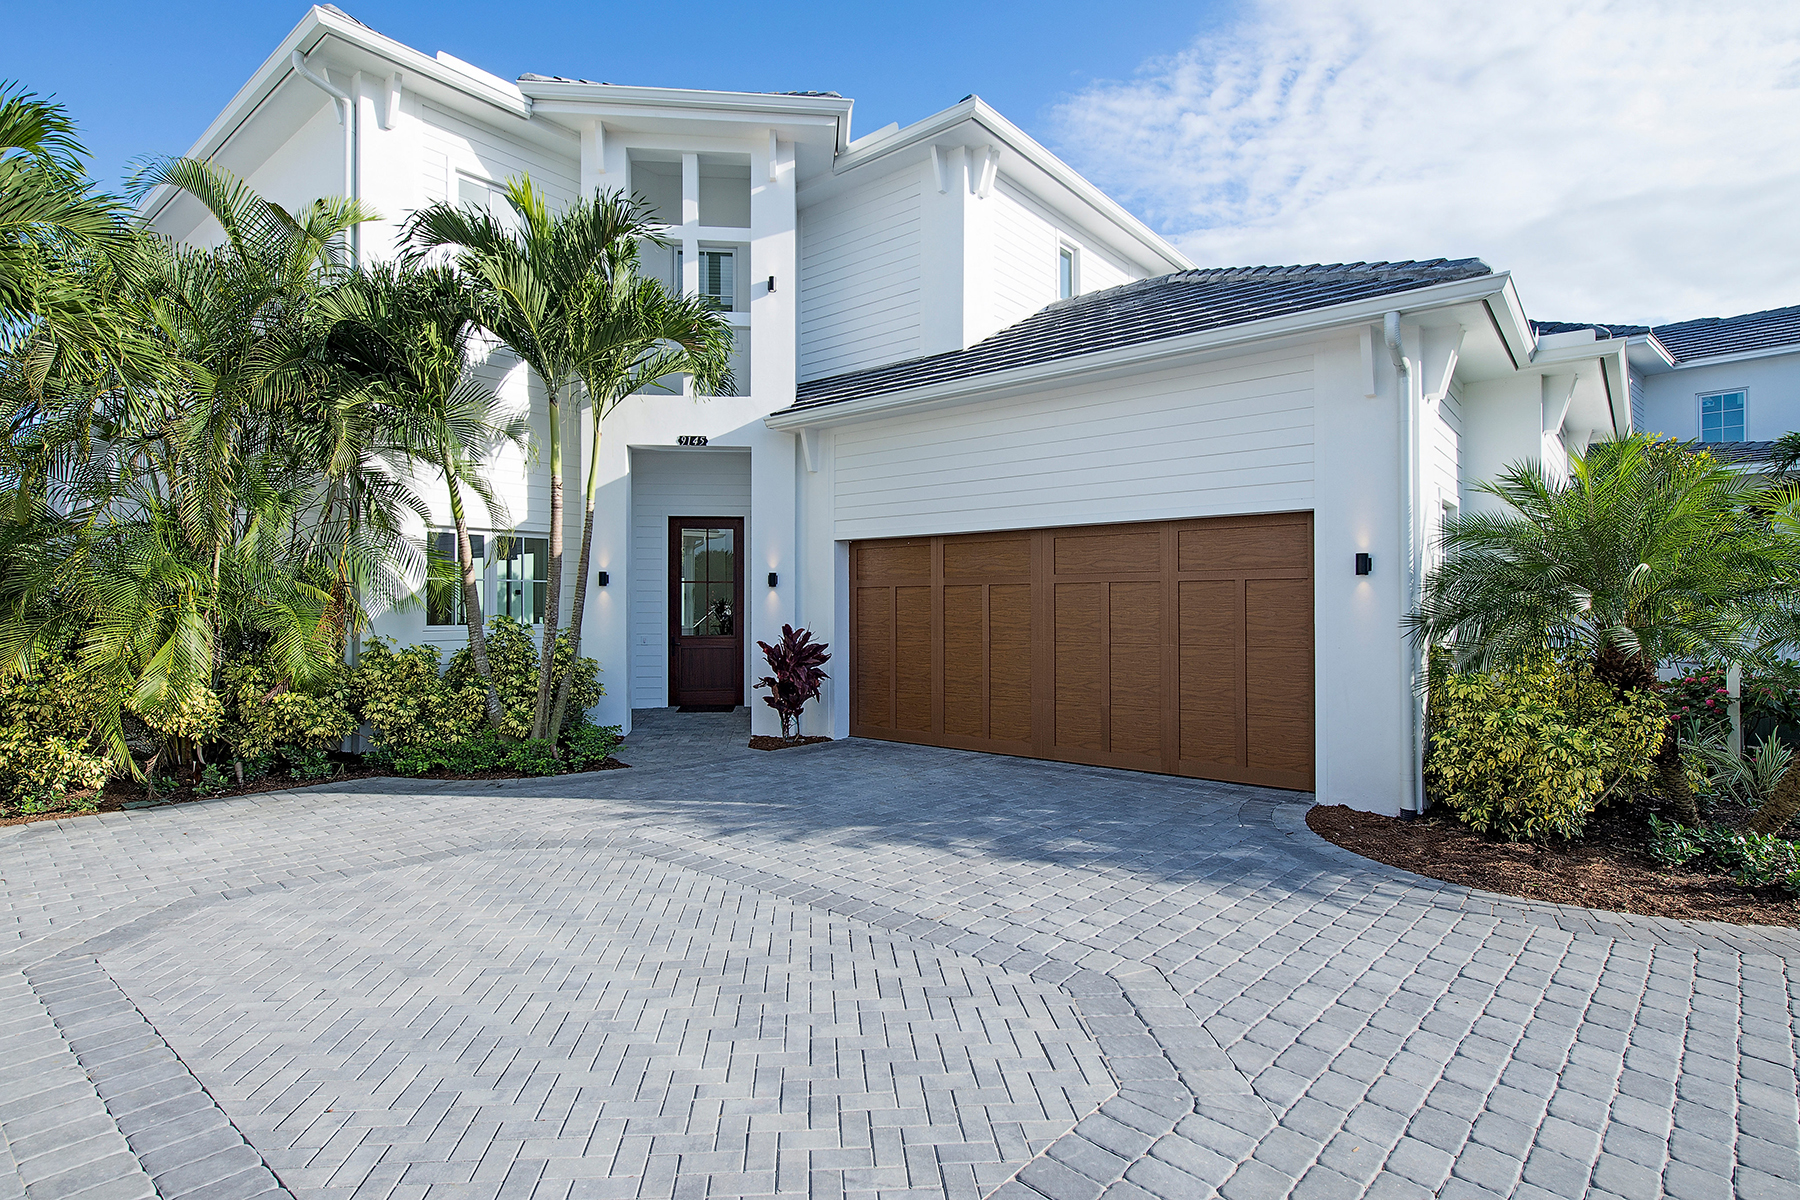 Single Family Home for Sale at 9245 Mercato Way , Naples, FL 34108 9245 Mercato Way Naples, Florida, 34108 United States